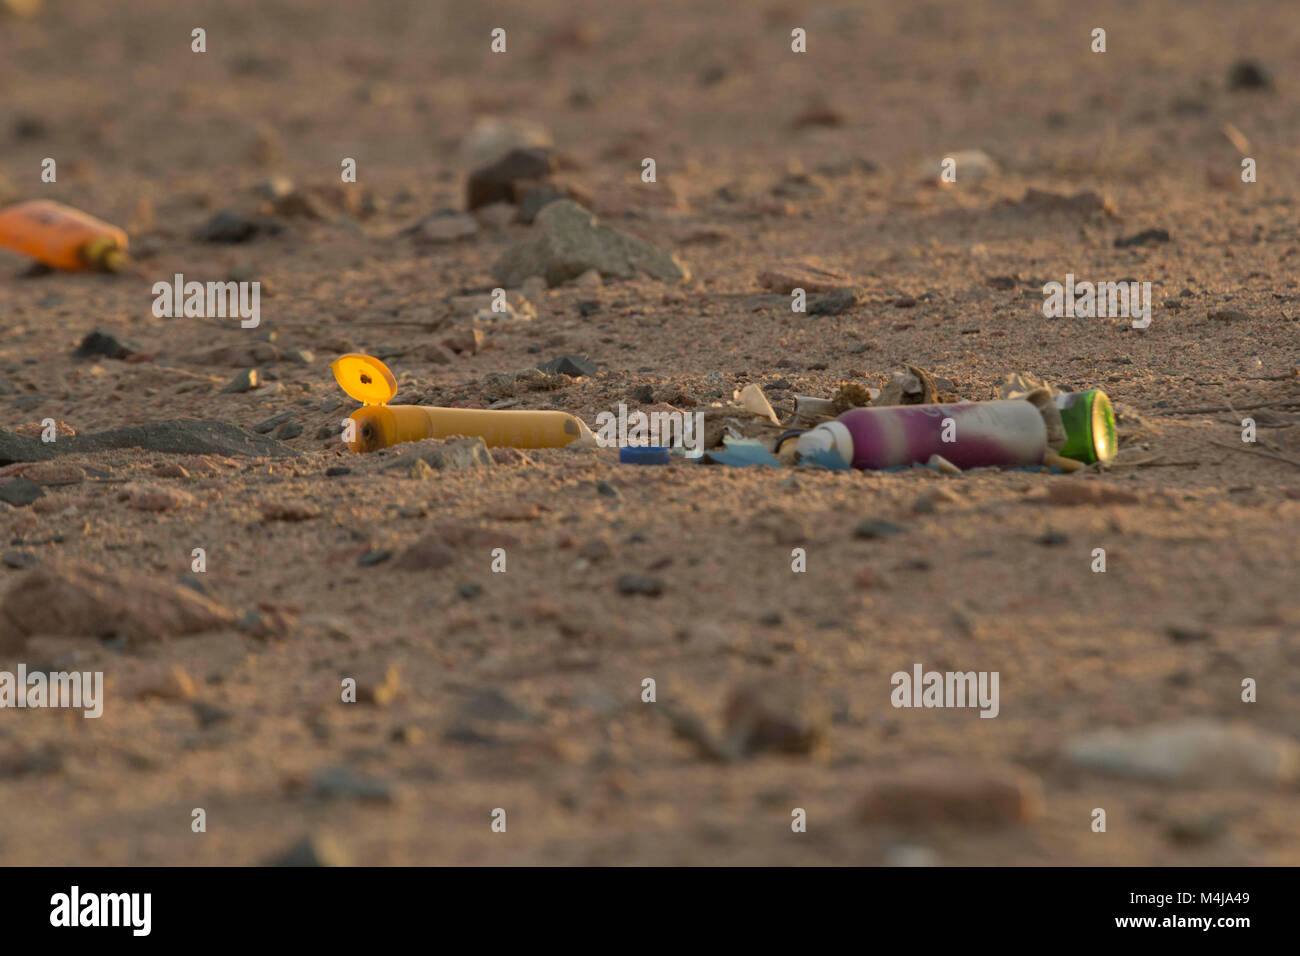 Plastic pollution on the beach - Stock Image